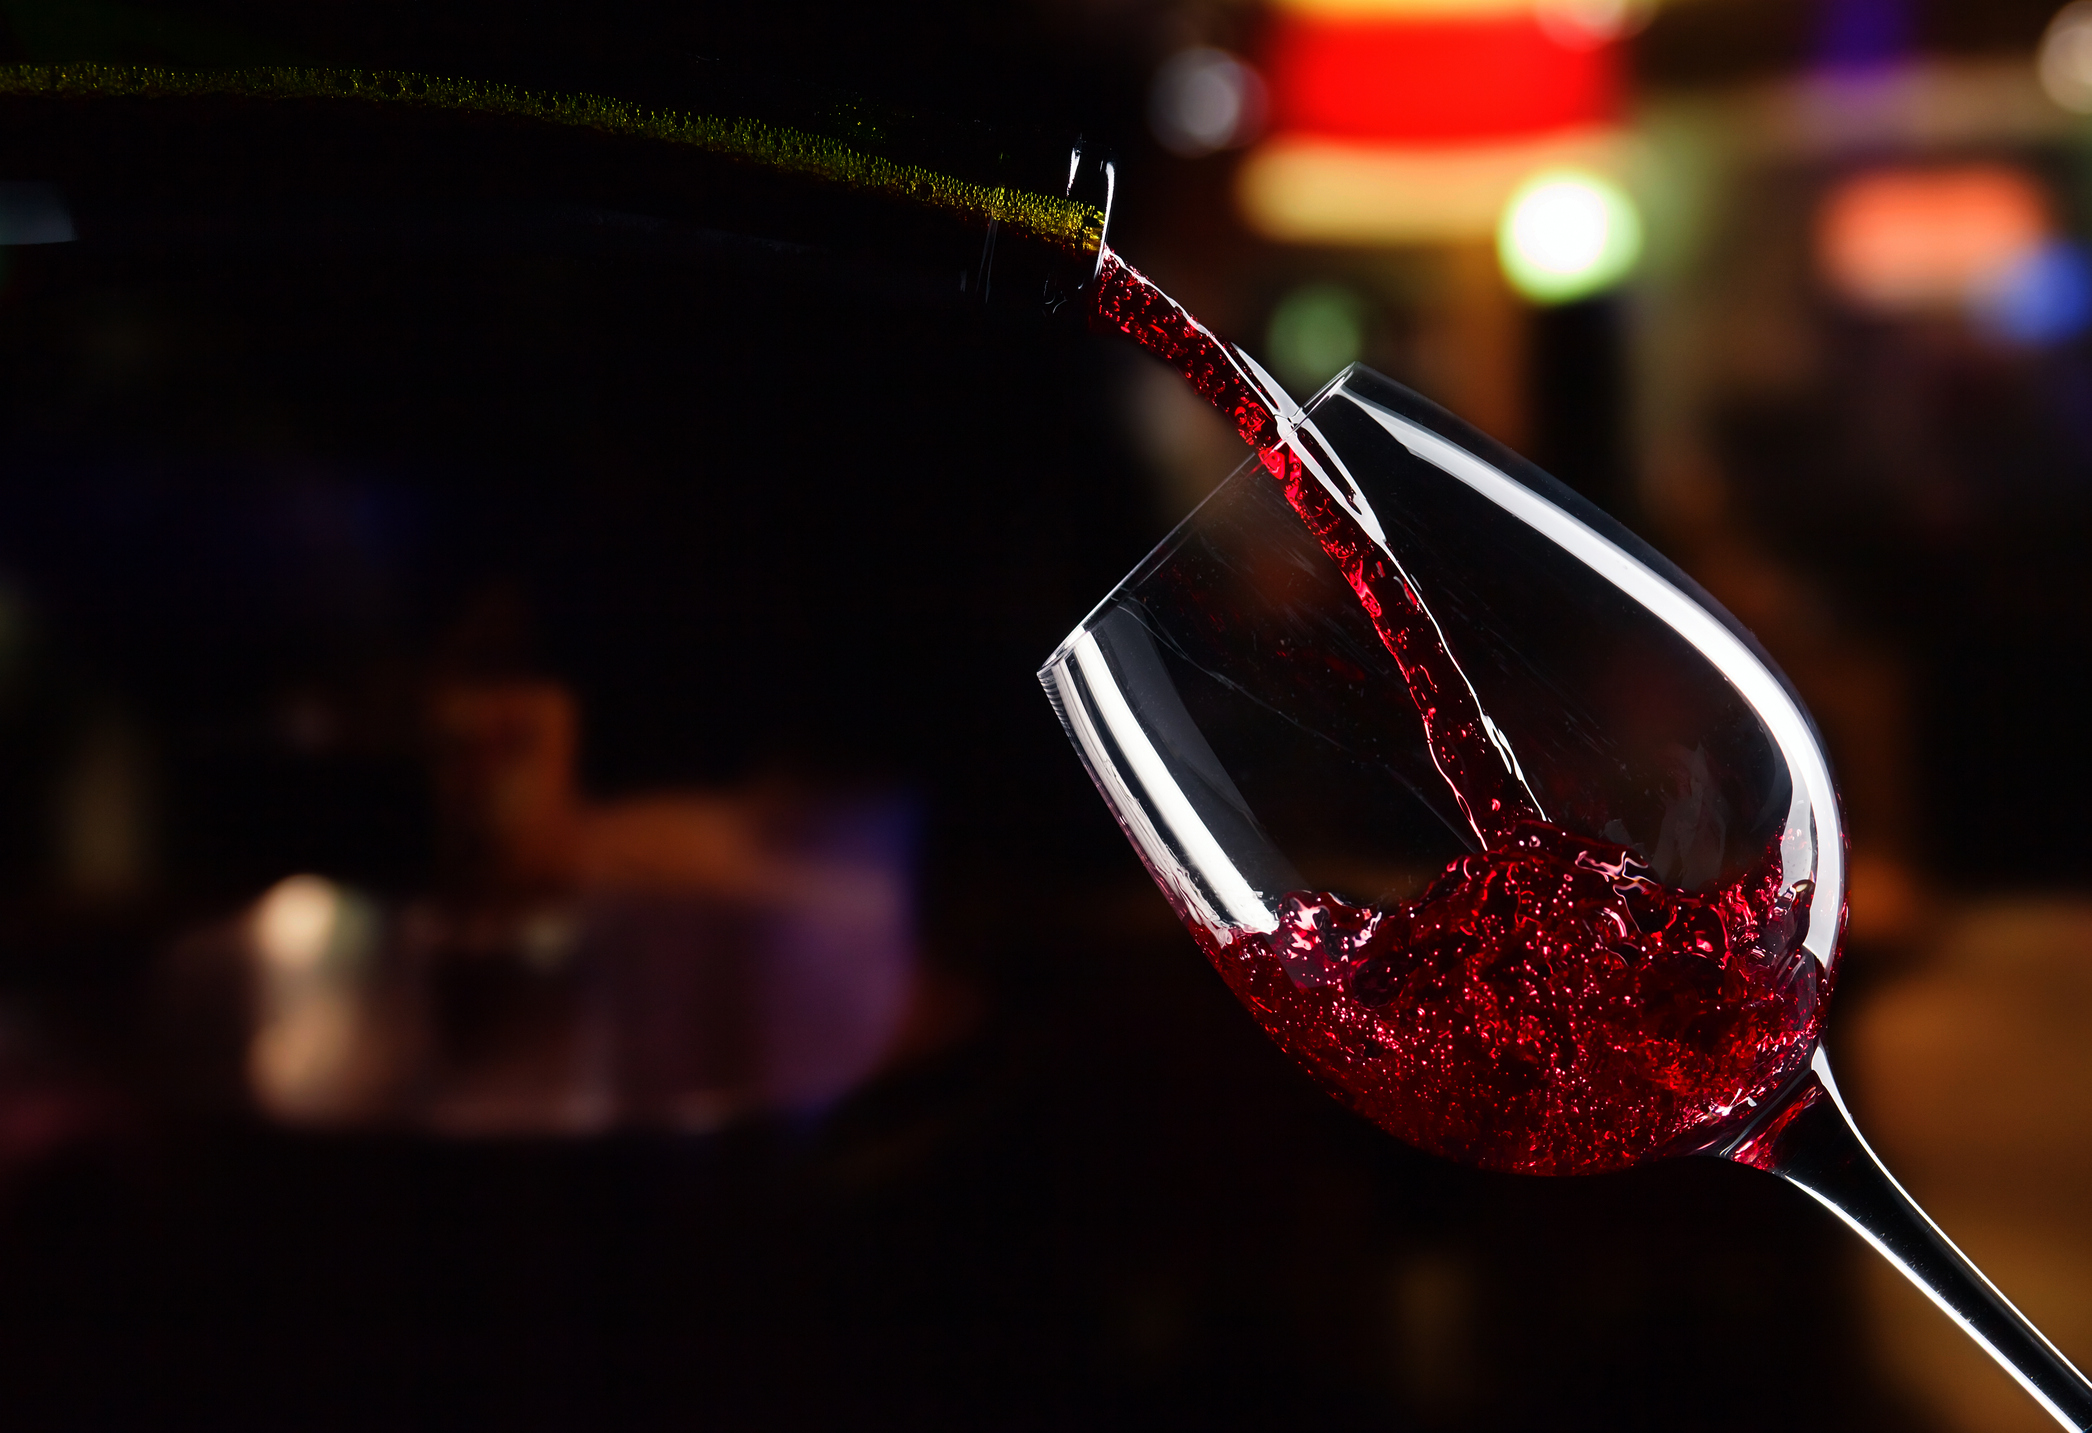 bottle and glass with red wine on dark background